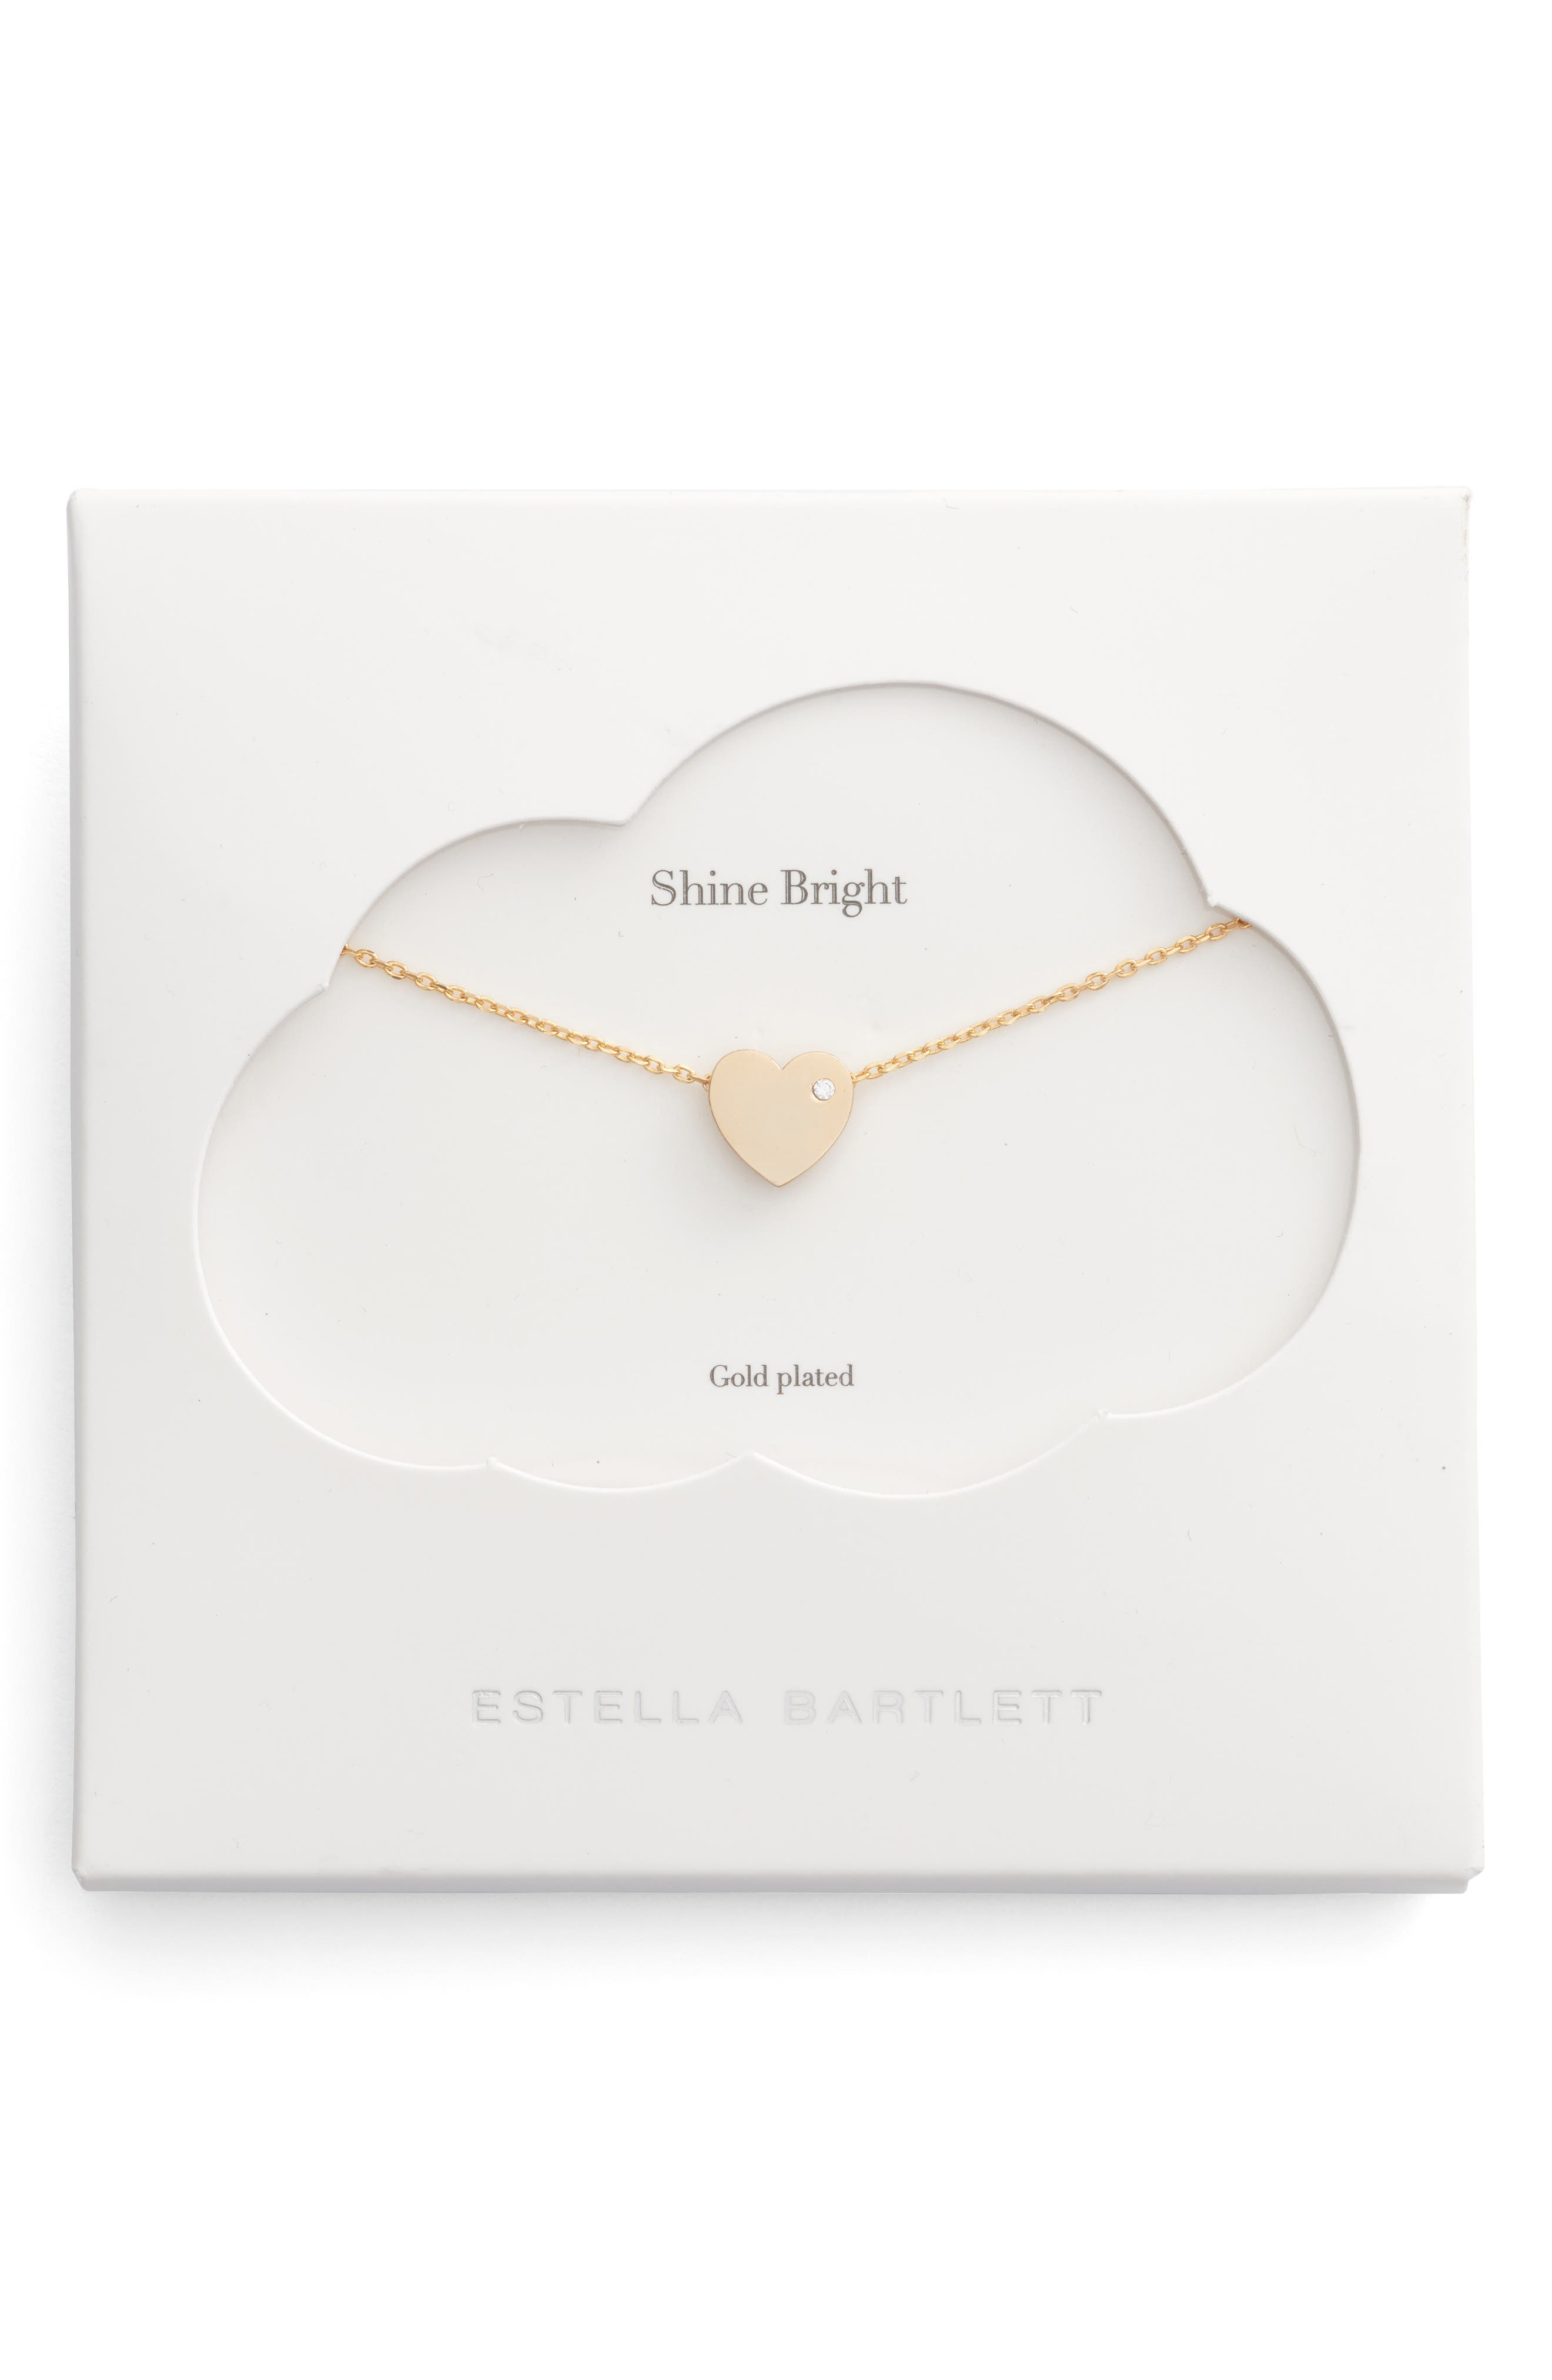 Alternate Image 1 Selected - Estella Bartlett Shine Bright Heart Necklace